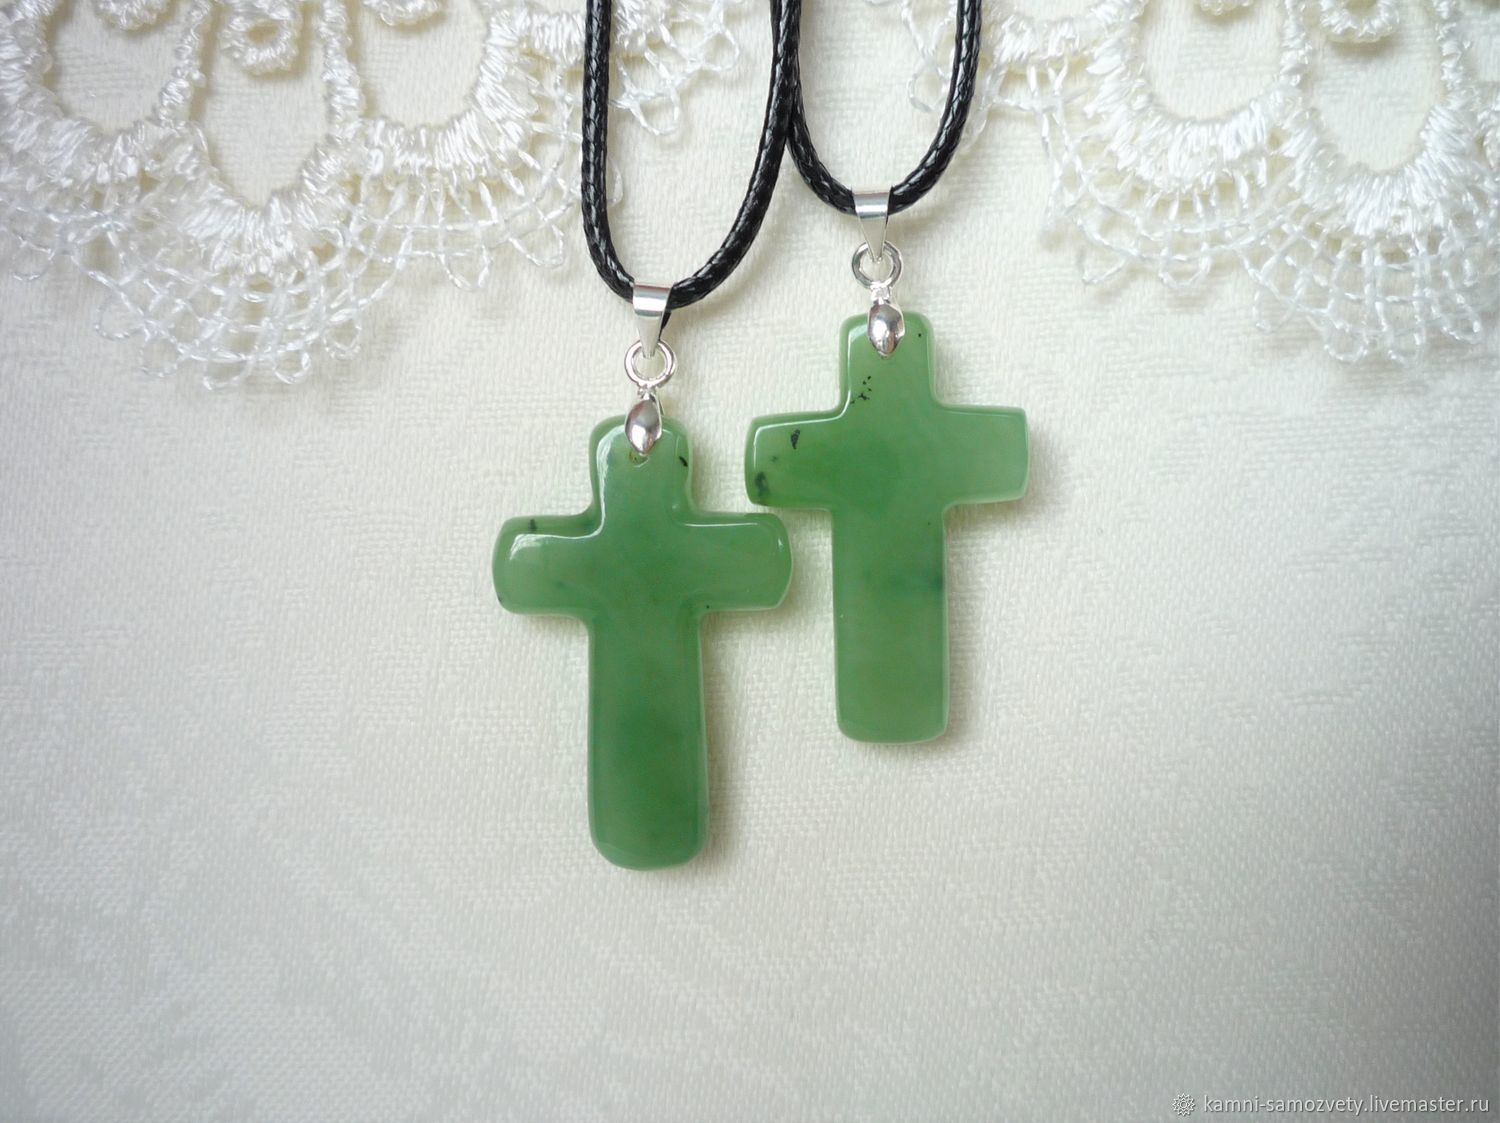 The Cross Of Jade Shop Online On Livemaster With Shipping